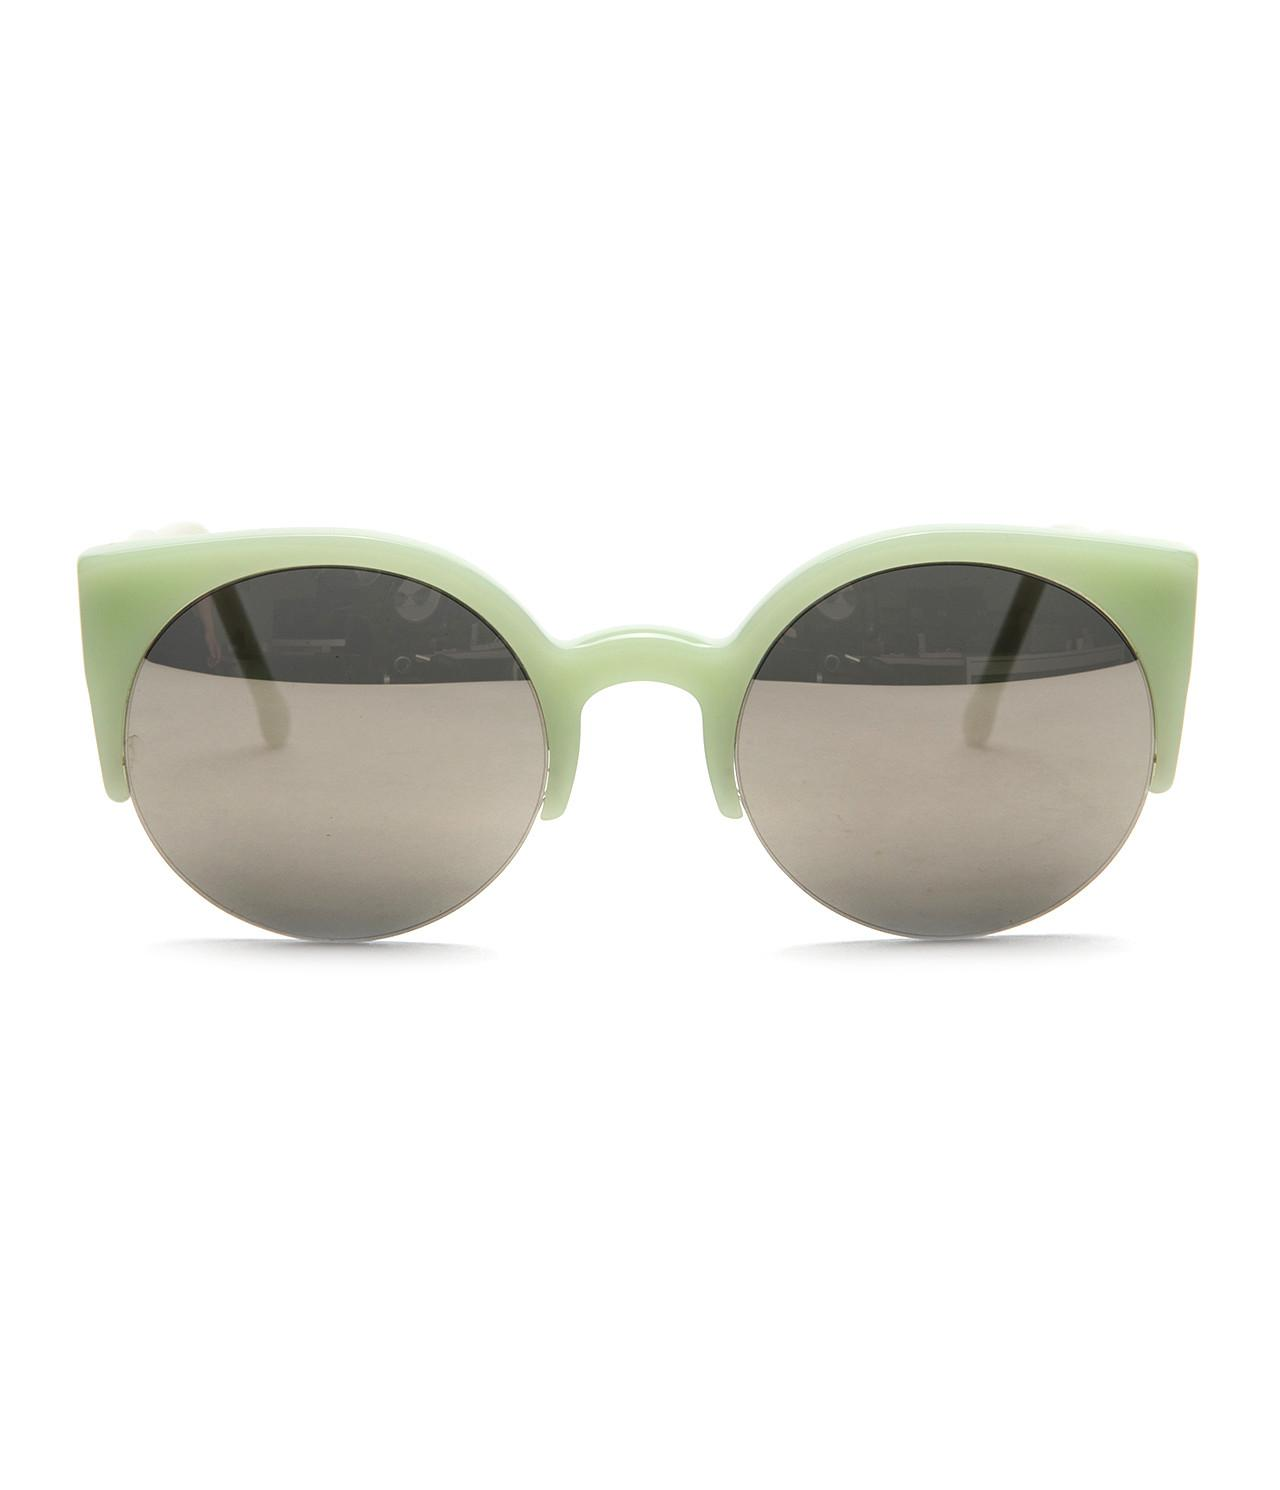 bc38e17aaa8f Retrosuperfuture - Lucia Moss Green Pastel Sunglasses With Gold Mirror  Ziess Lens - Lyst. View fullscreen